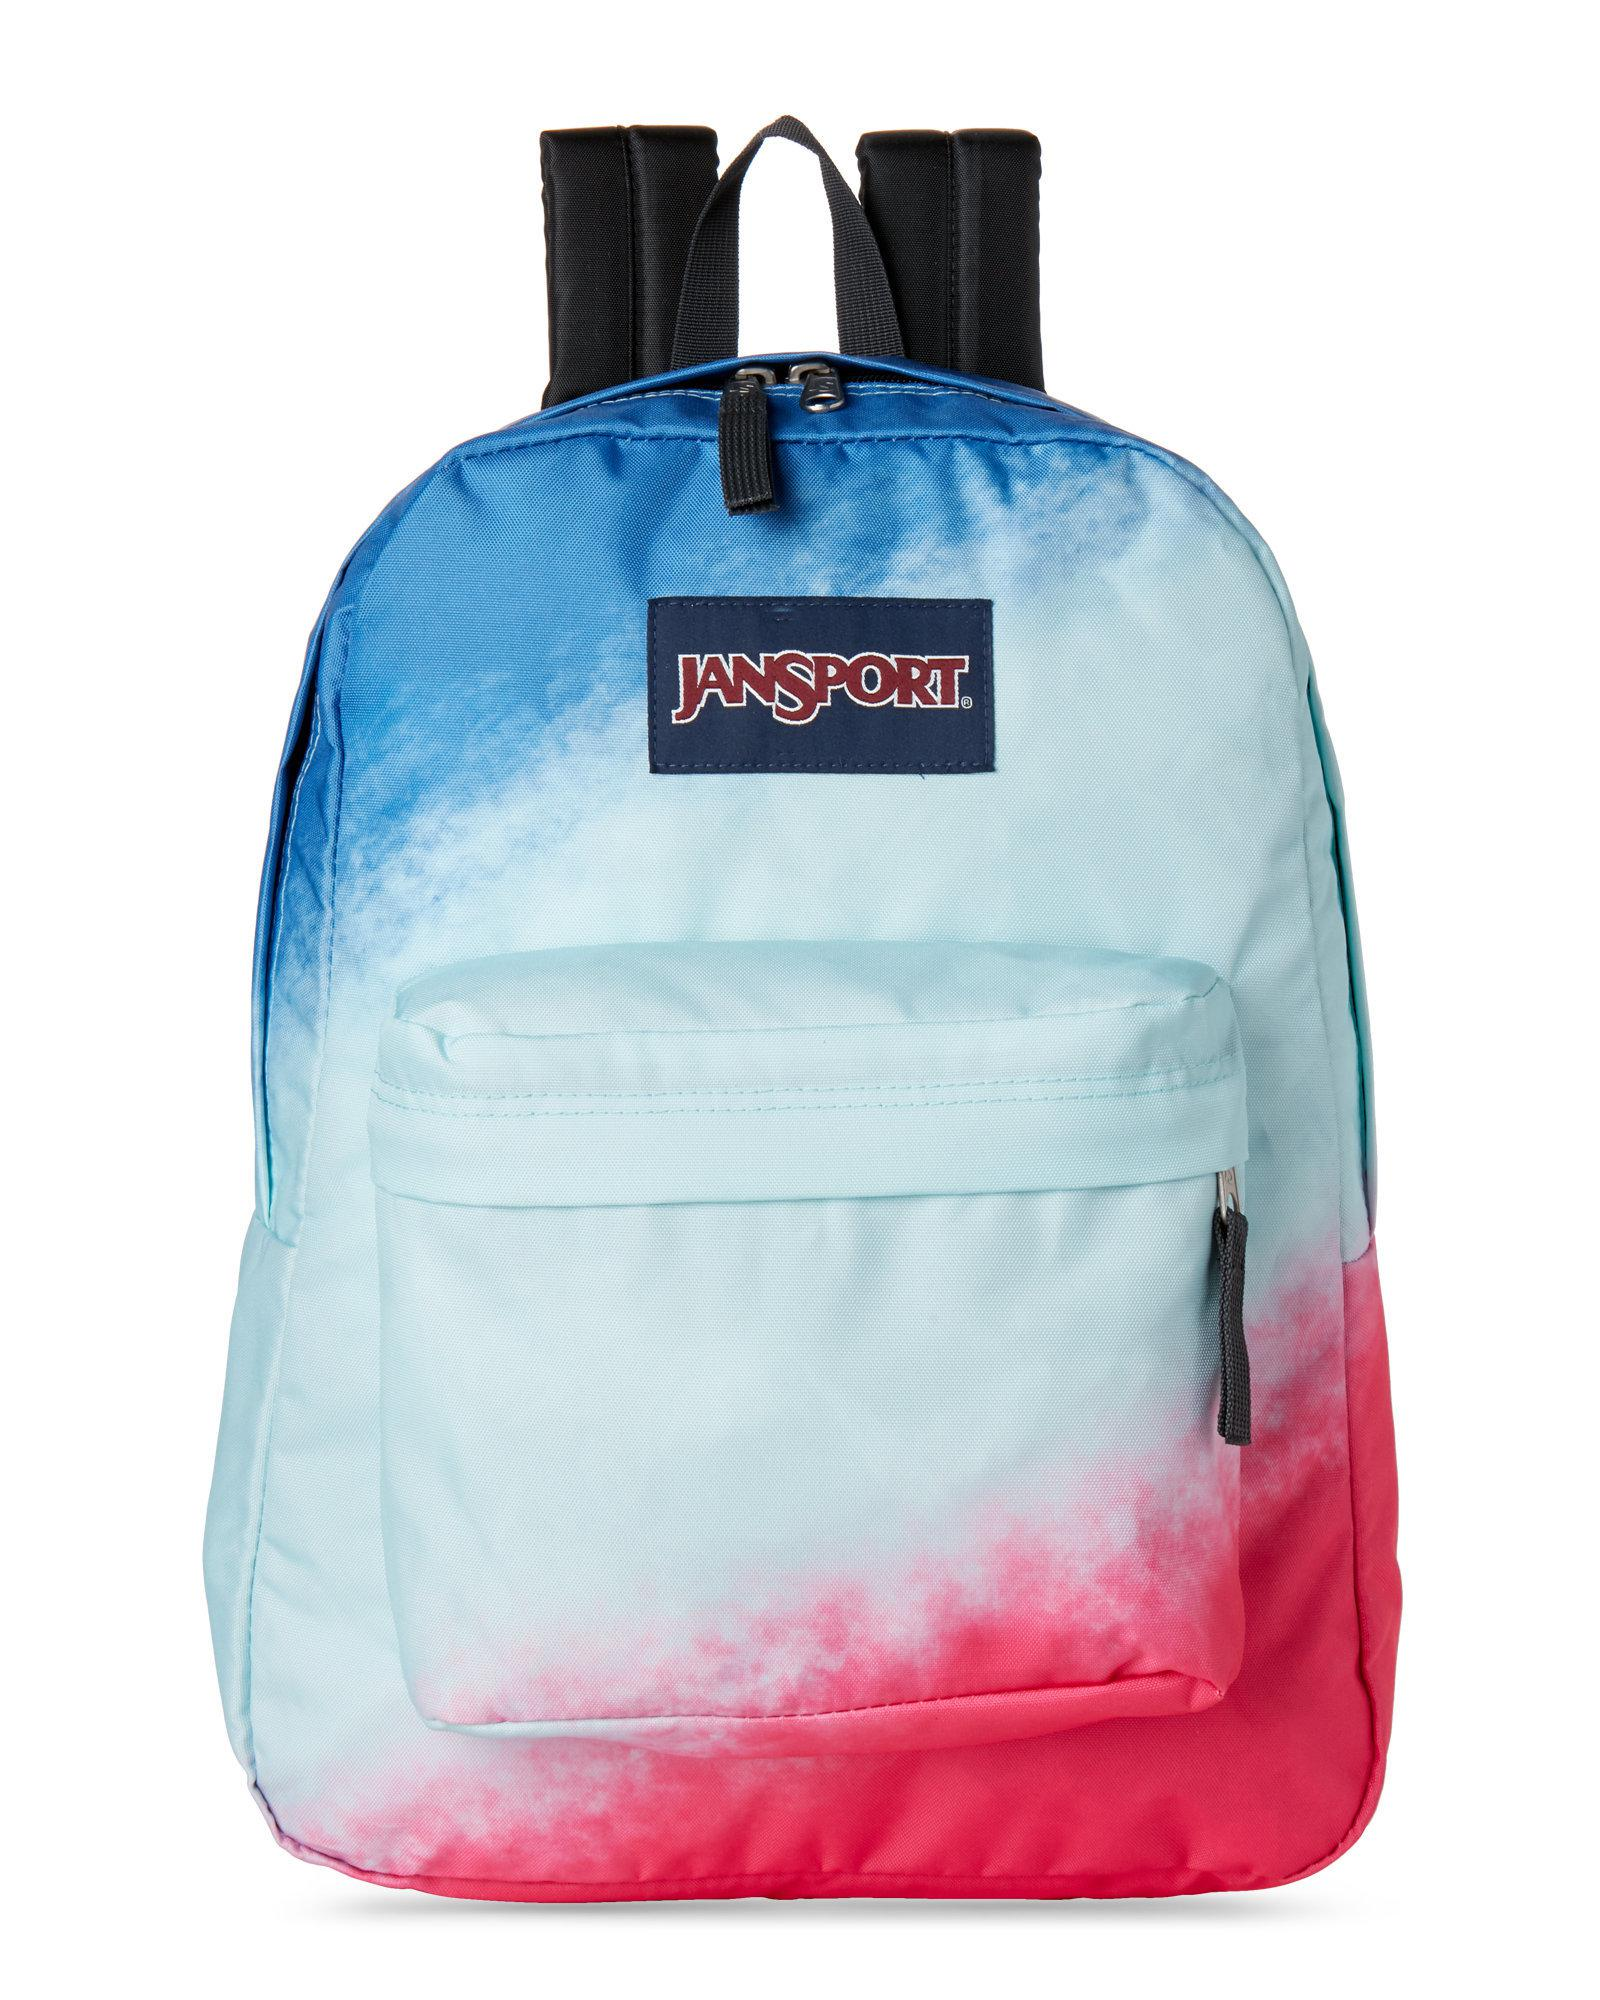 46a264c44ab8 Lyst - Jansport Ombré High Stakes Backpack in Blue